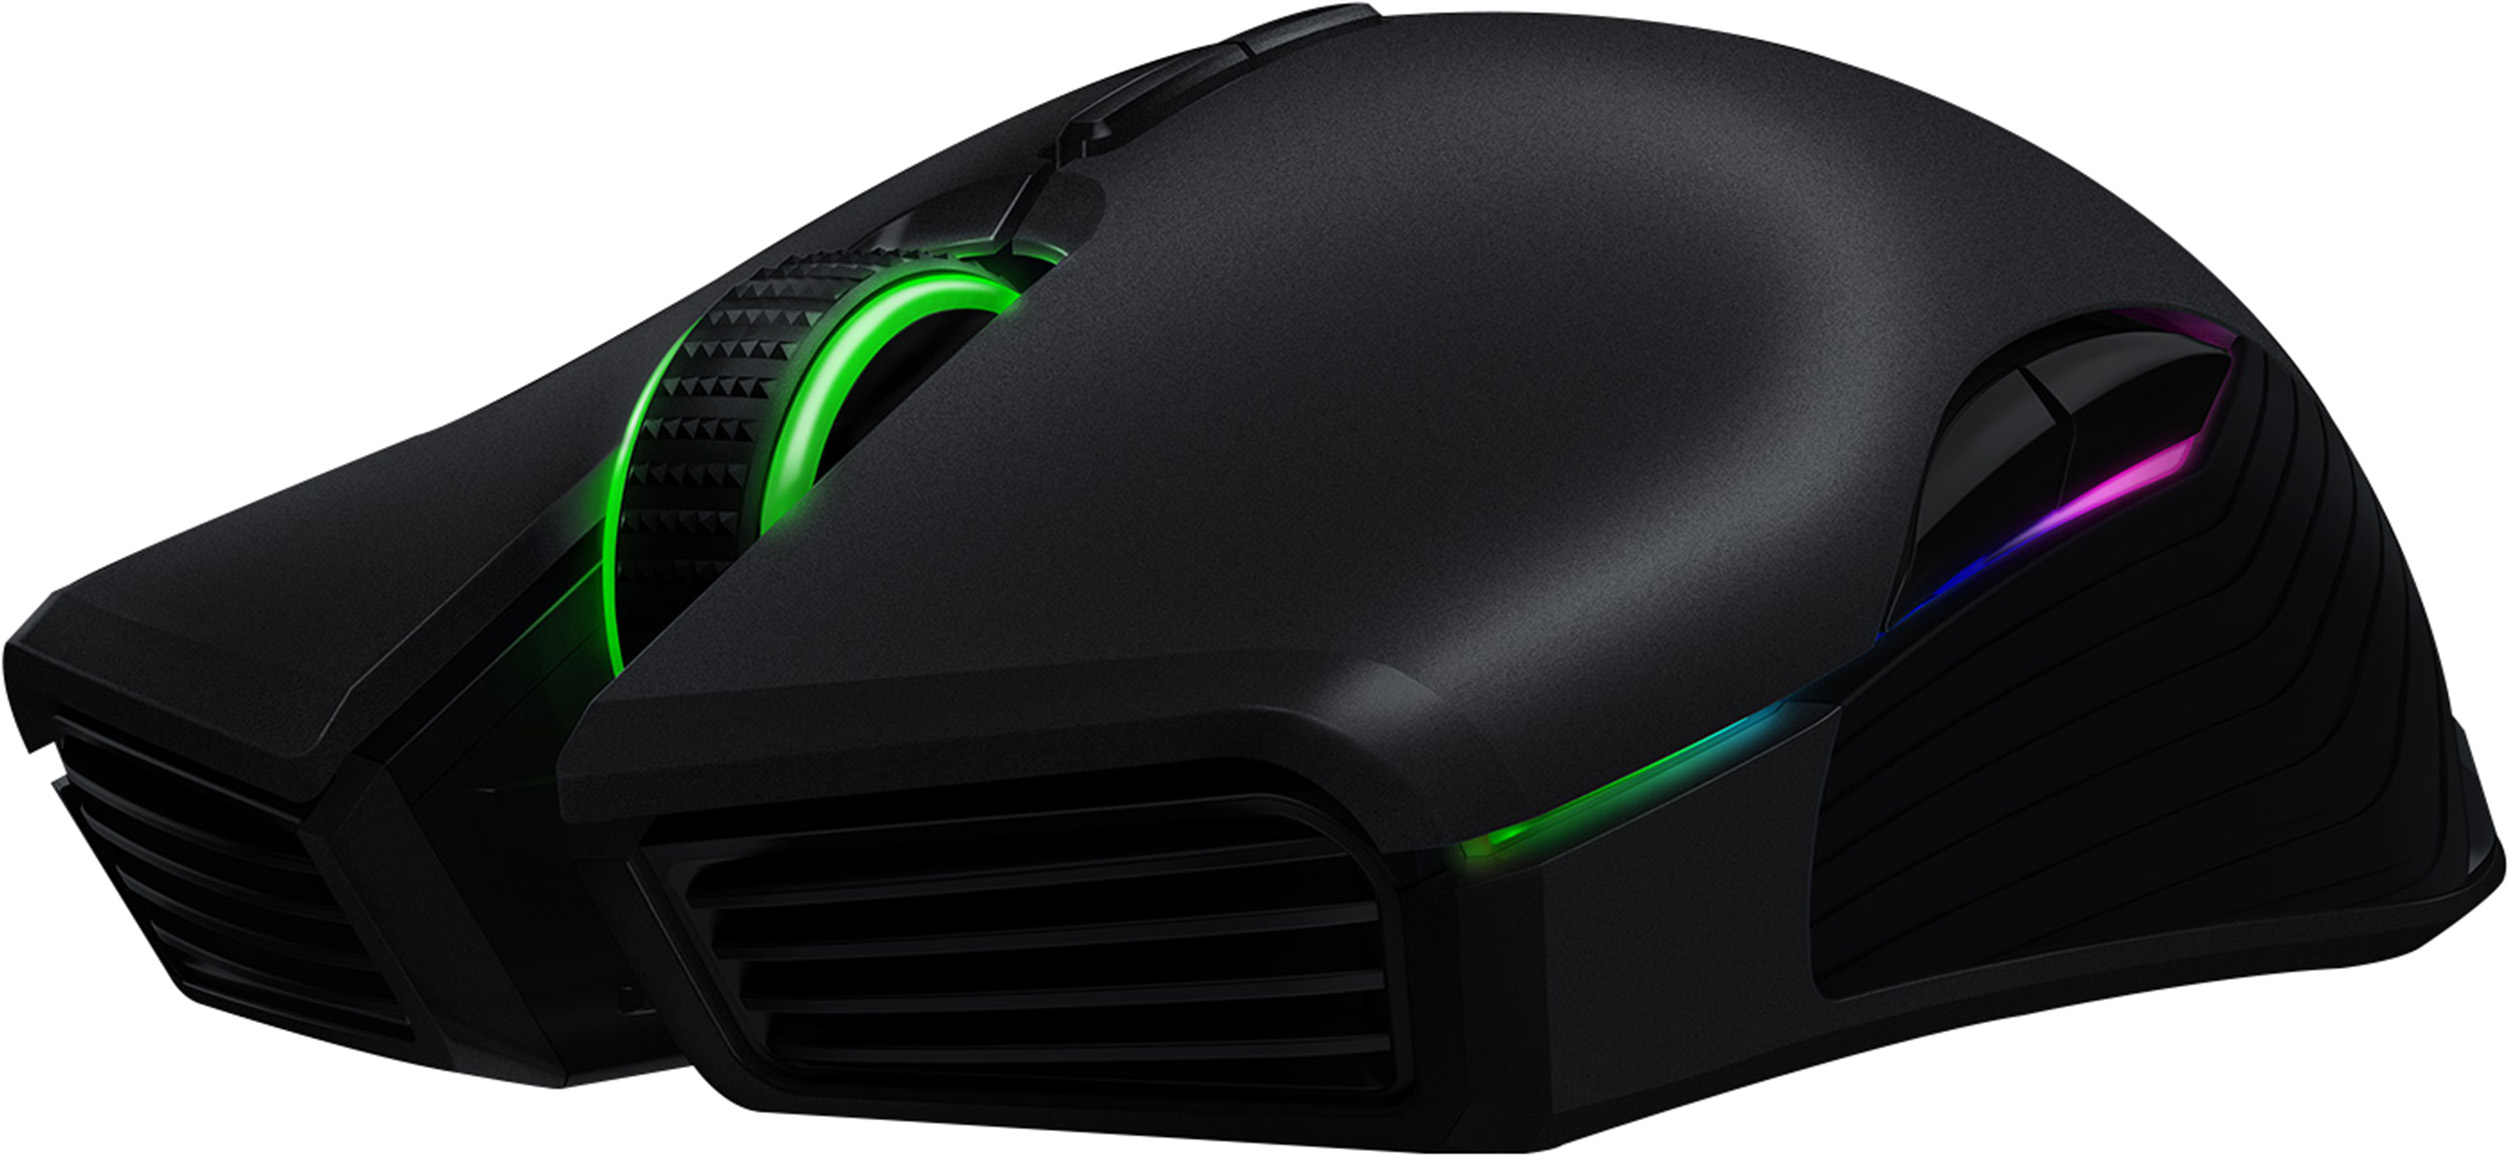 Razer Lancehead Wireless Gaming Mouse Deal